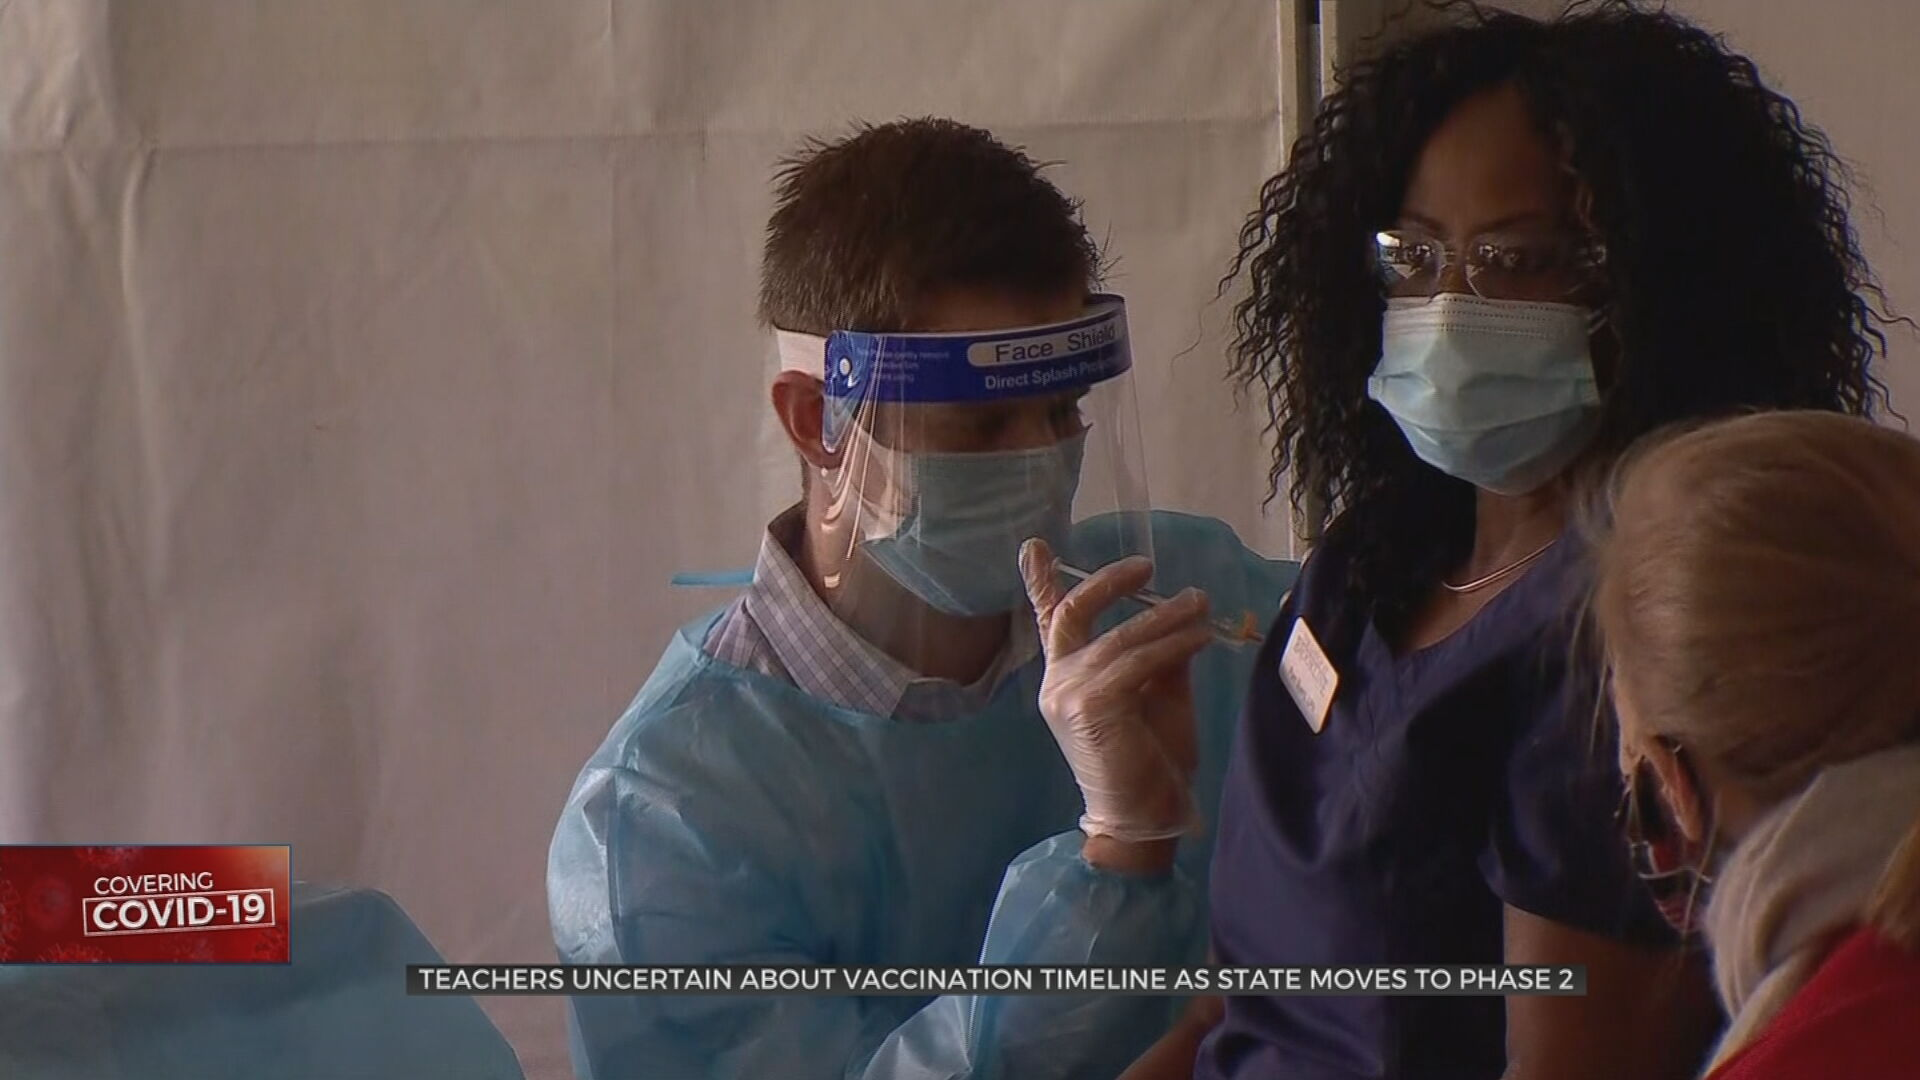 Teachers Uncertain About Vaccination Timeline As State Moves To Phase 2